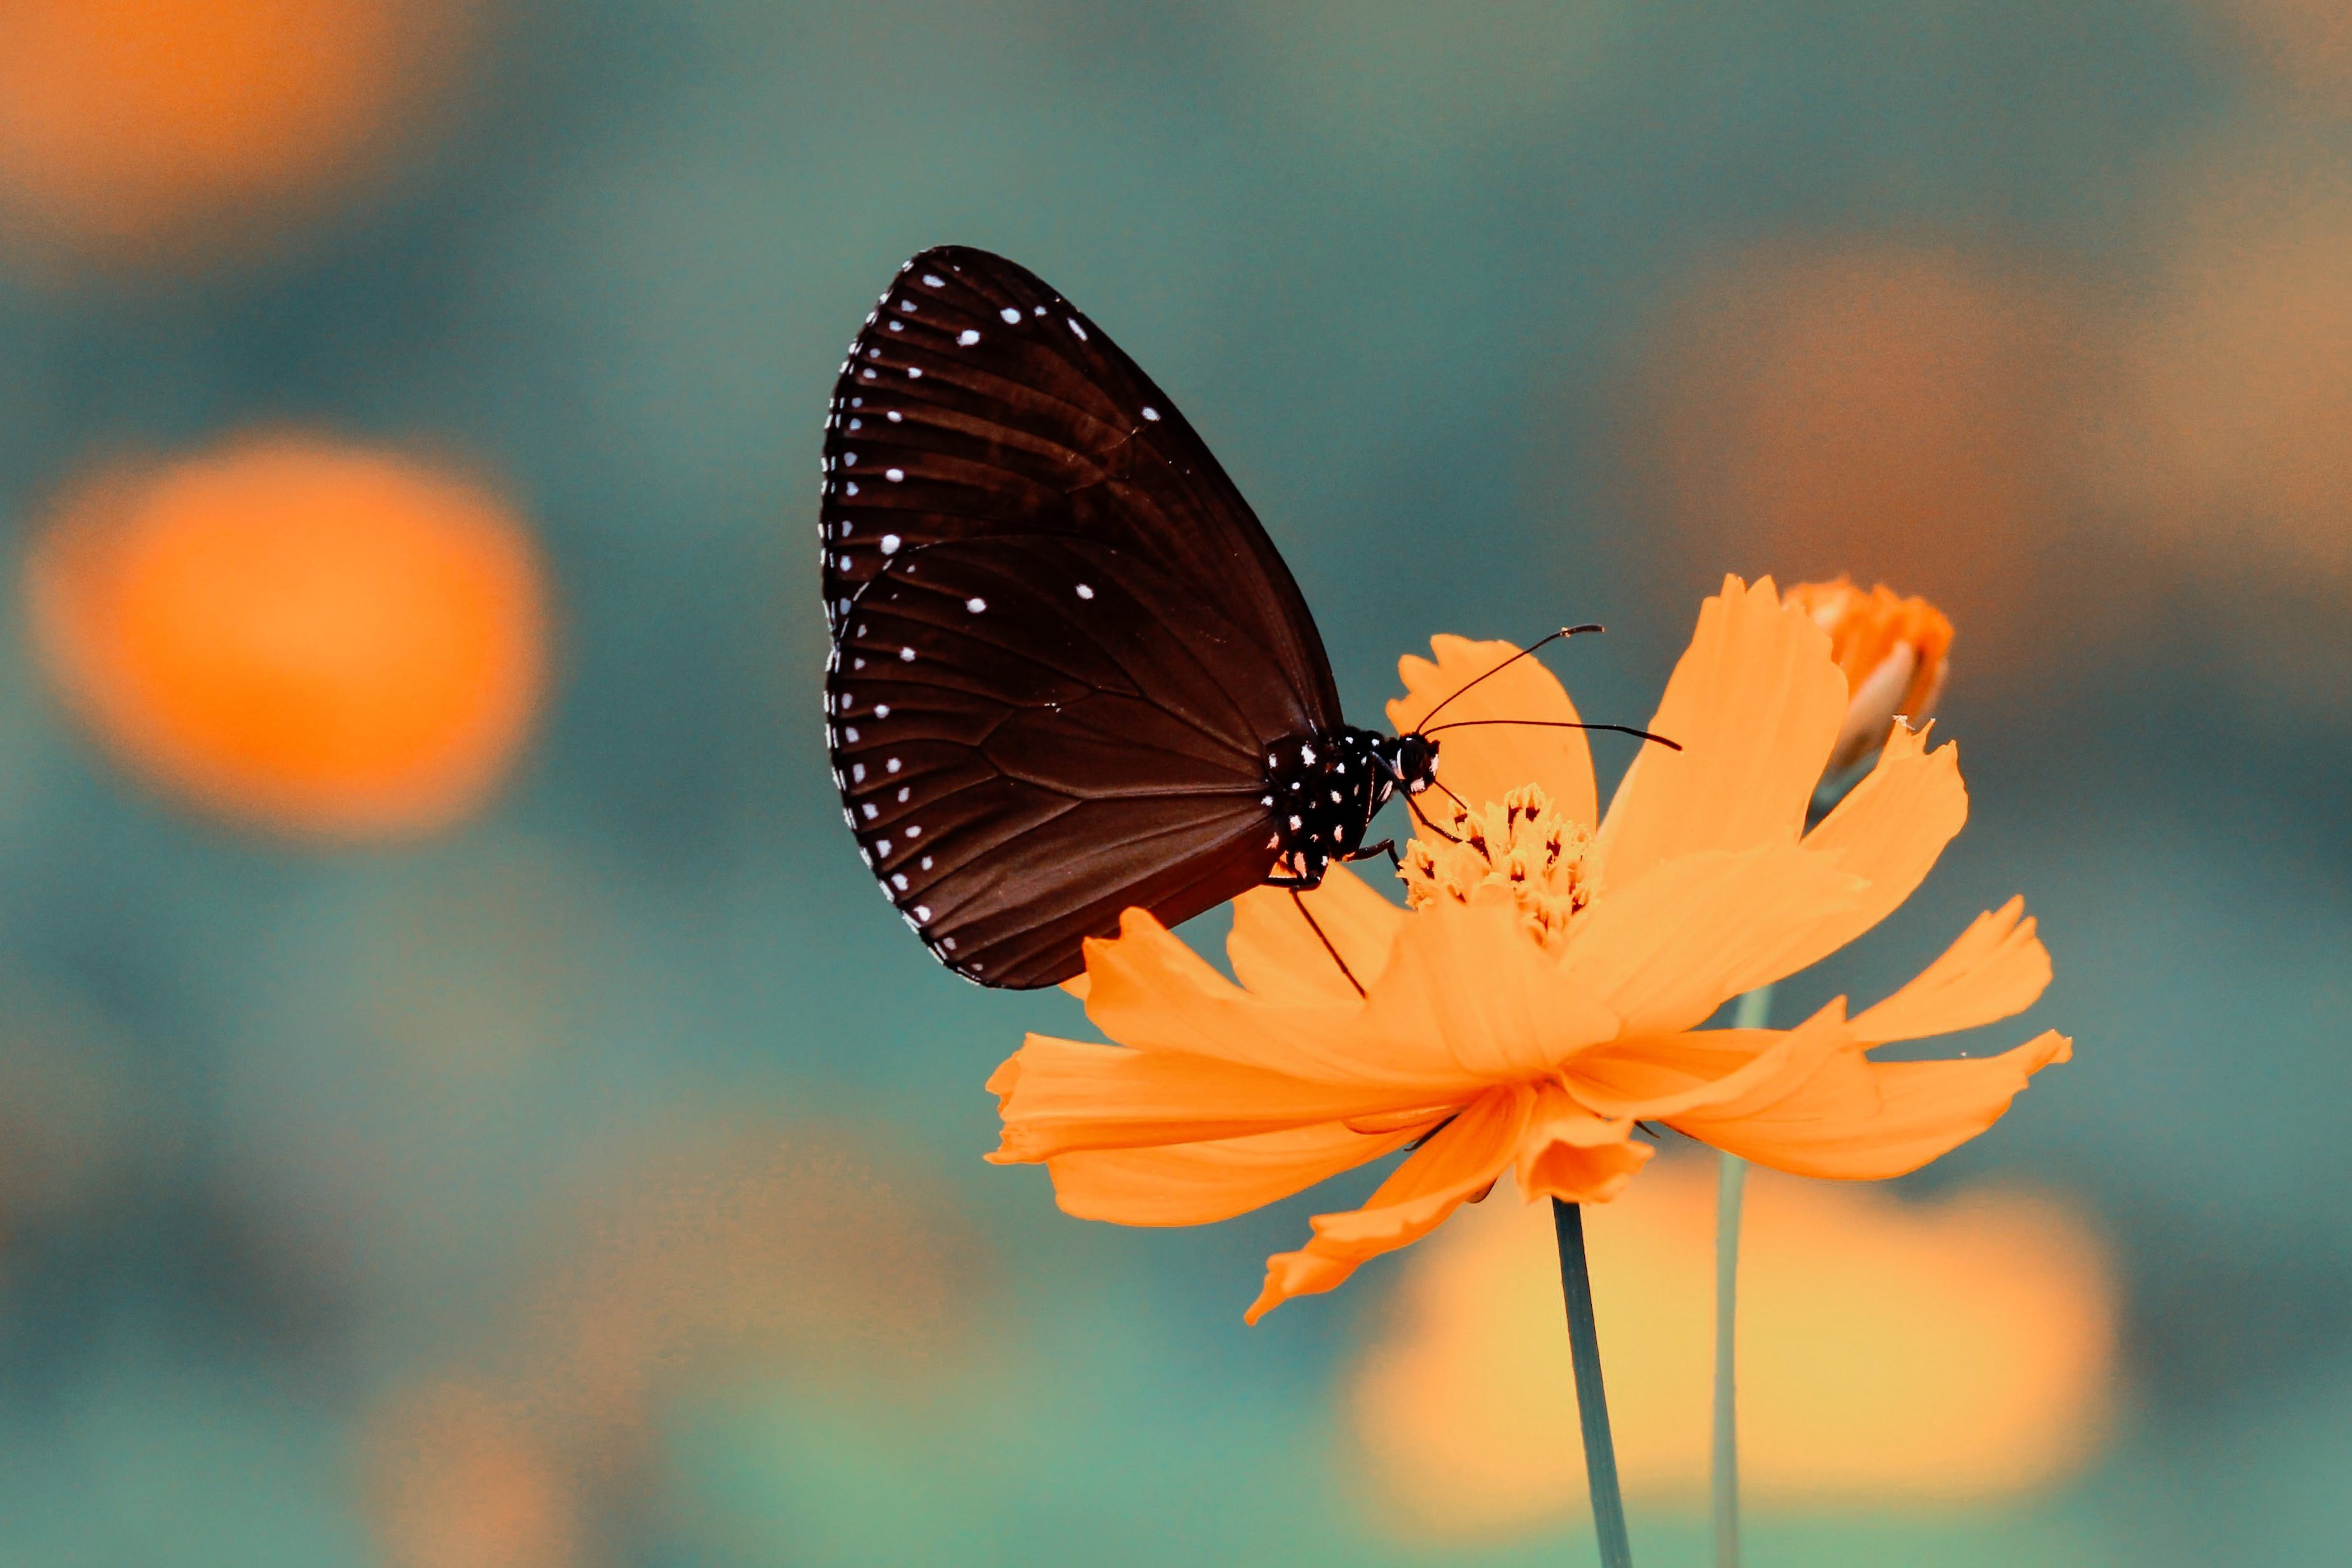 Image: Butterfly, flower, yellow, blurred background